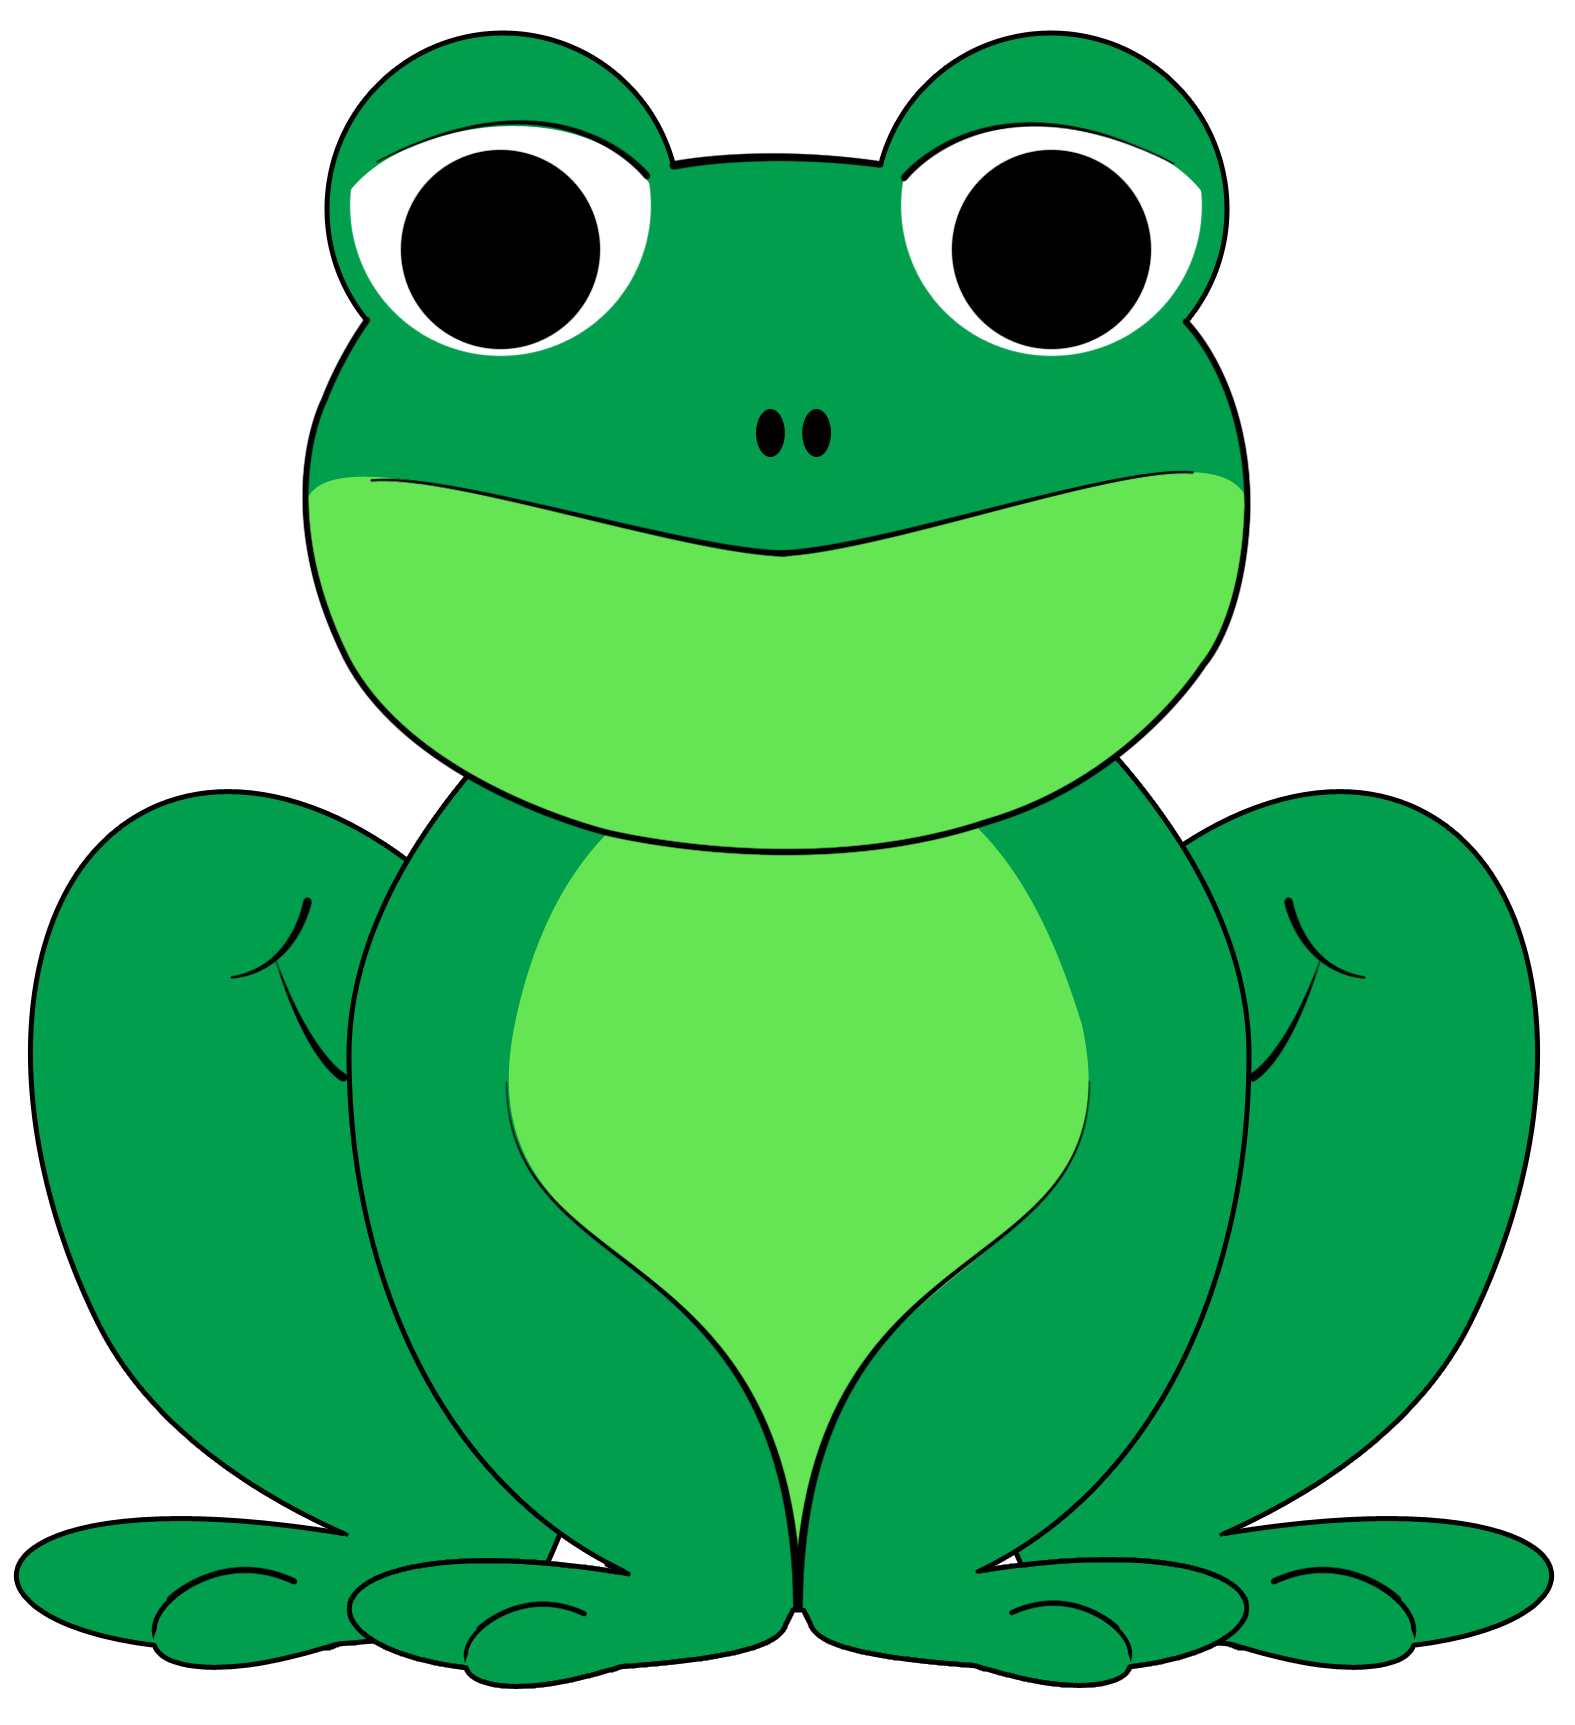 Frog Silhouette Clipart | Free download on ClipArtMag